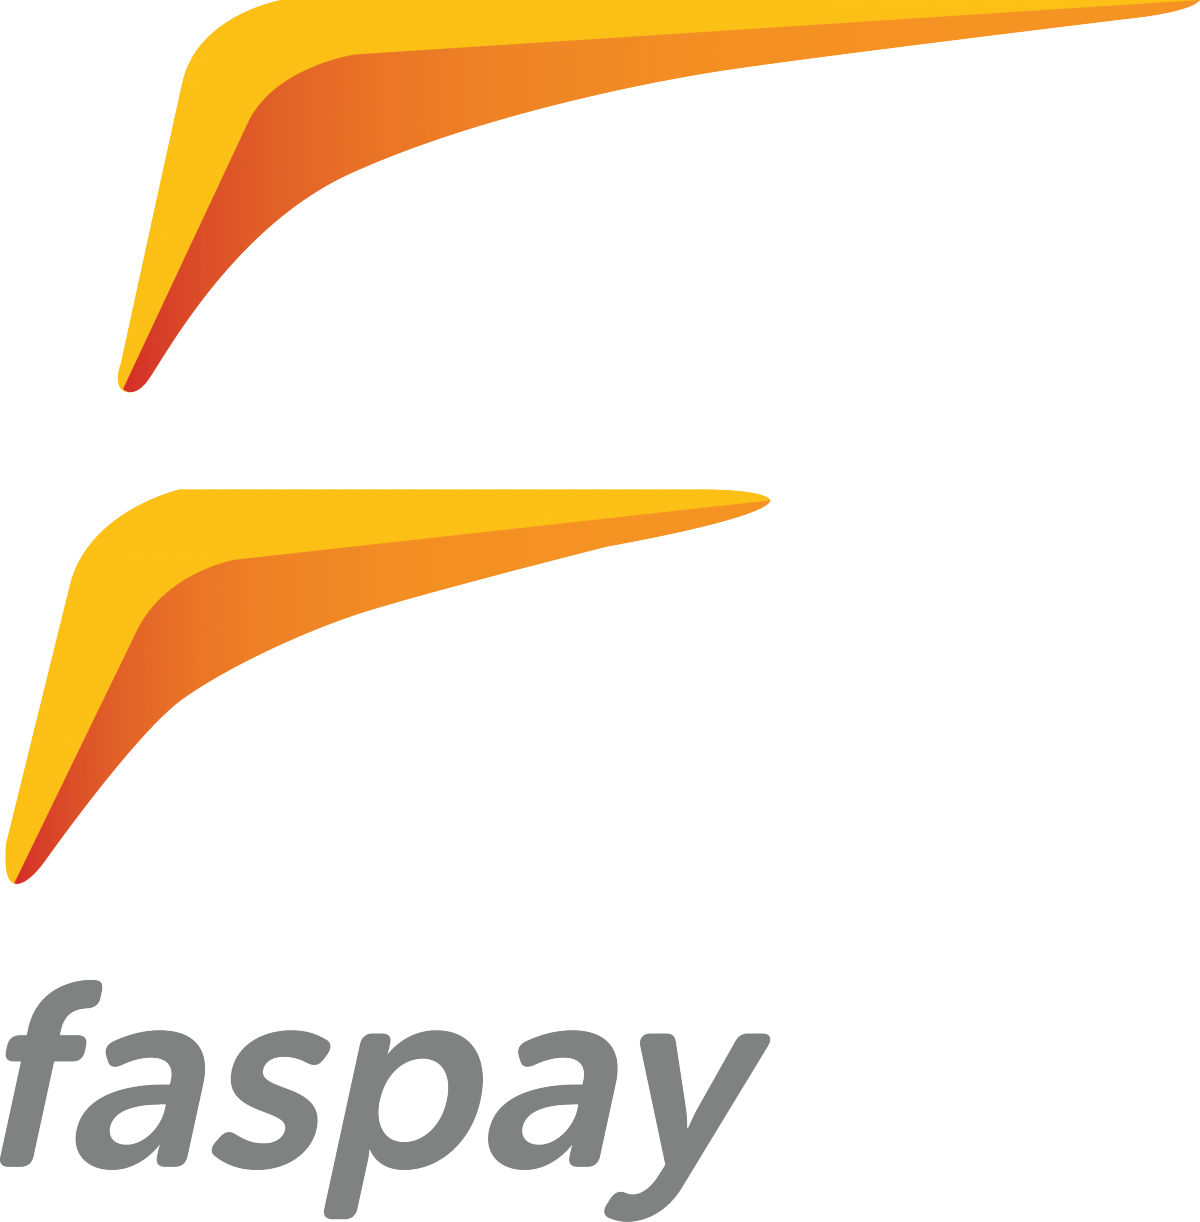 PT Media Indonusa (faspay)